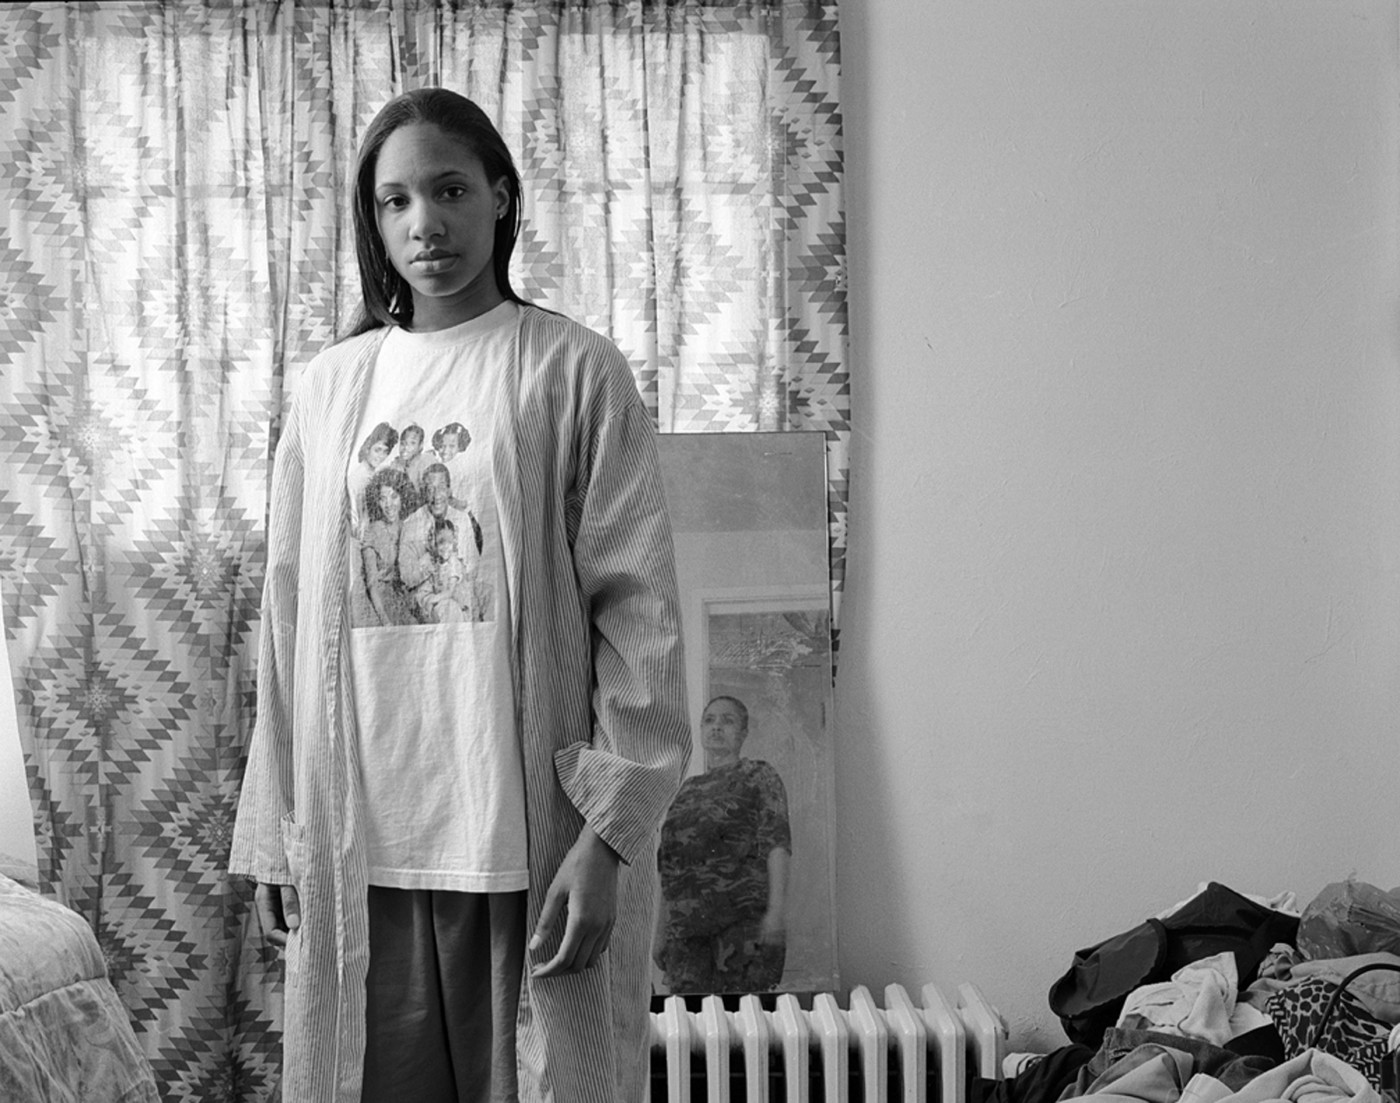 LaToya Ruby Frazier, </span><span><em>Huxtables, Mom and Me</em>, </span><span>2008. Gelatin silver print, 24 x 28&quot;. Courtesy of the artist and Michel Rein, Paris/Brussels. Dr Kenneth Montague/The Wedge Collection.